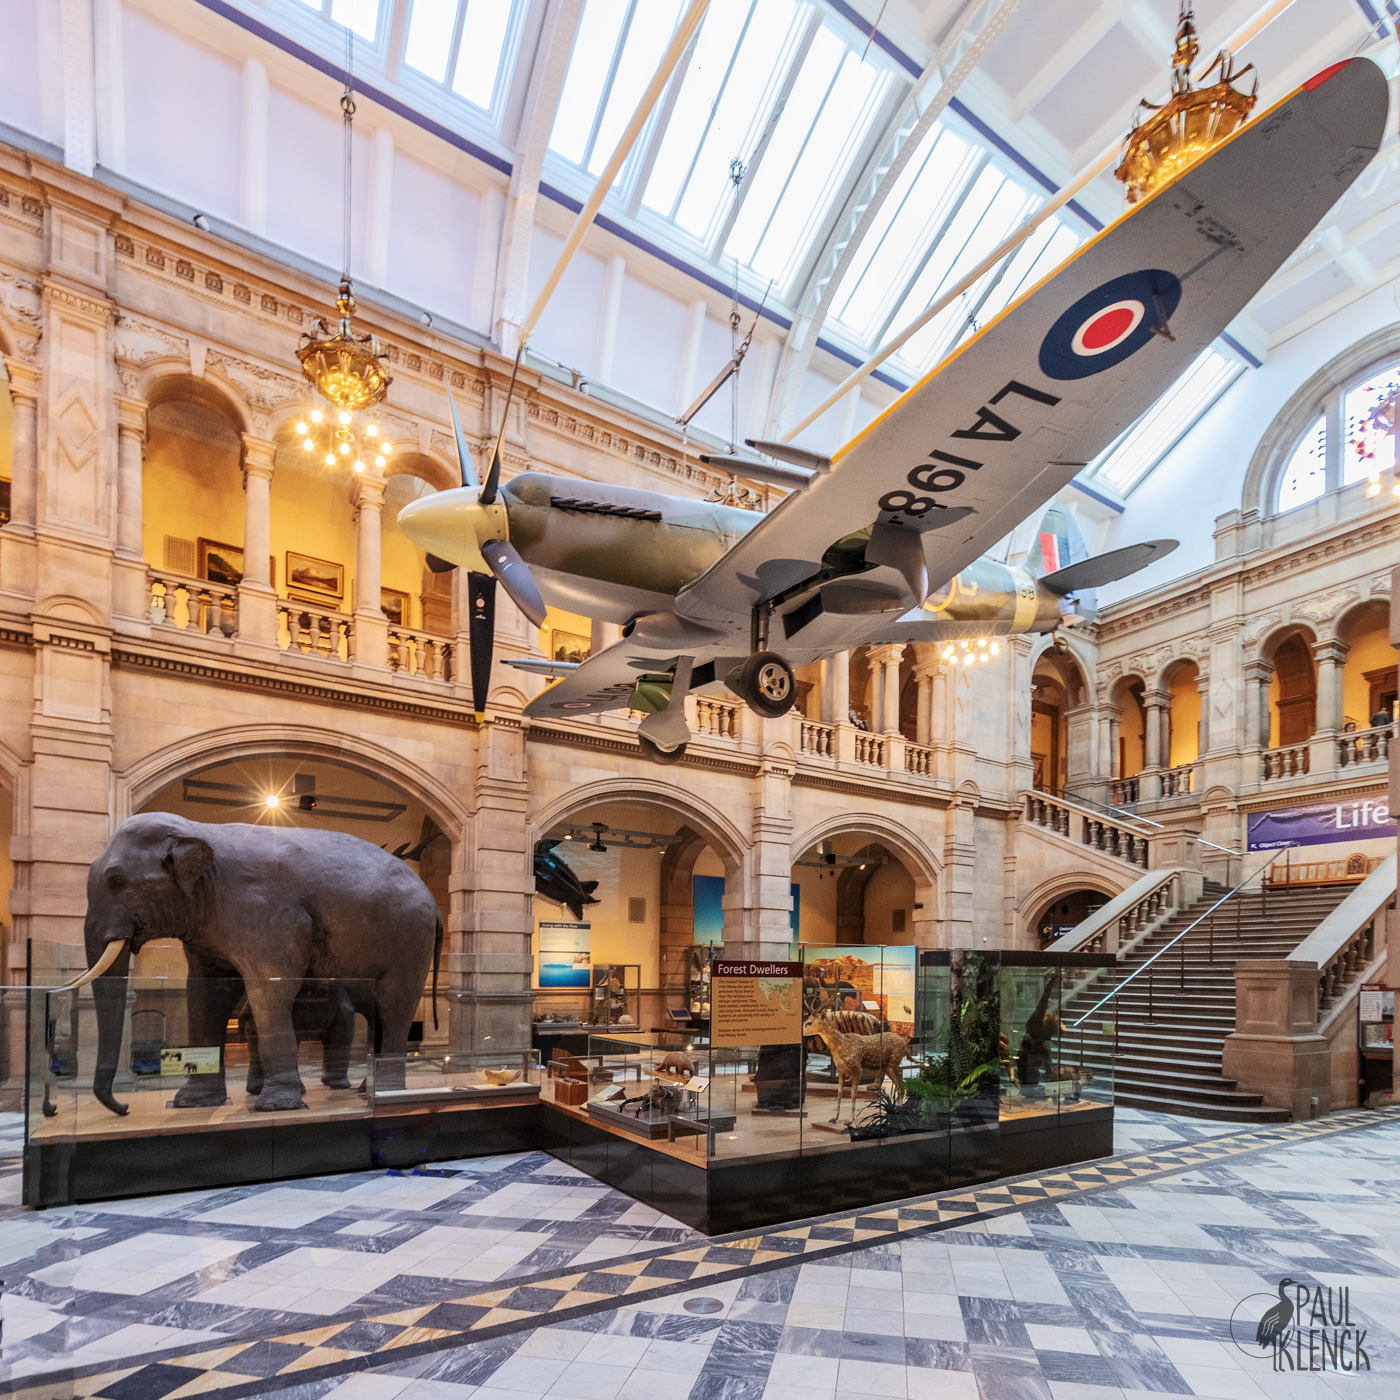 Kelvingrove - art gallery, natural history and aviation mash up